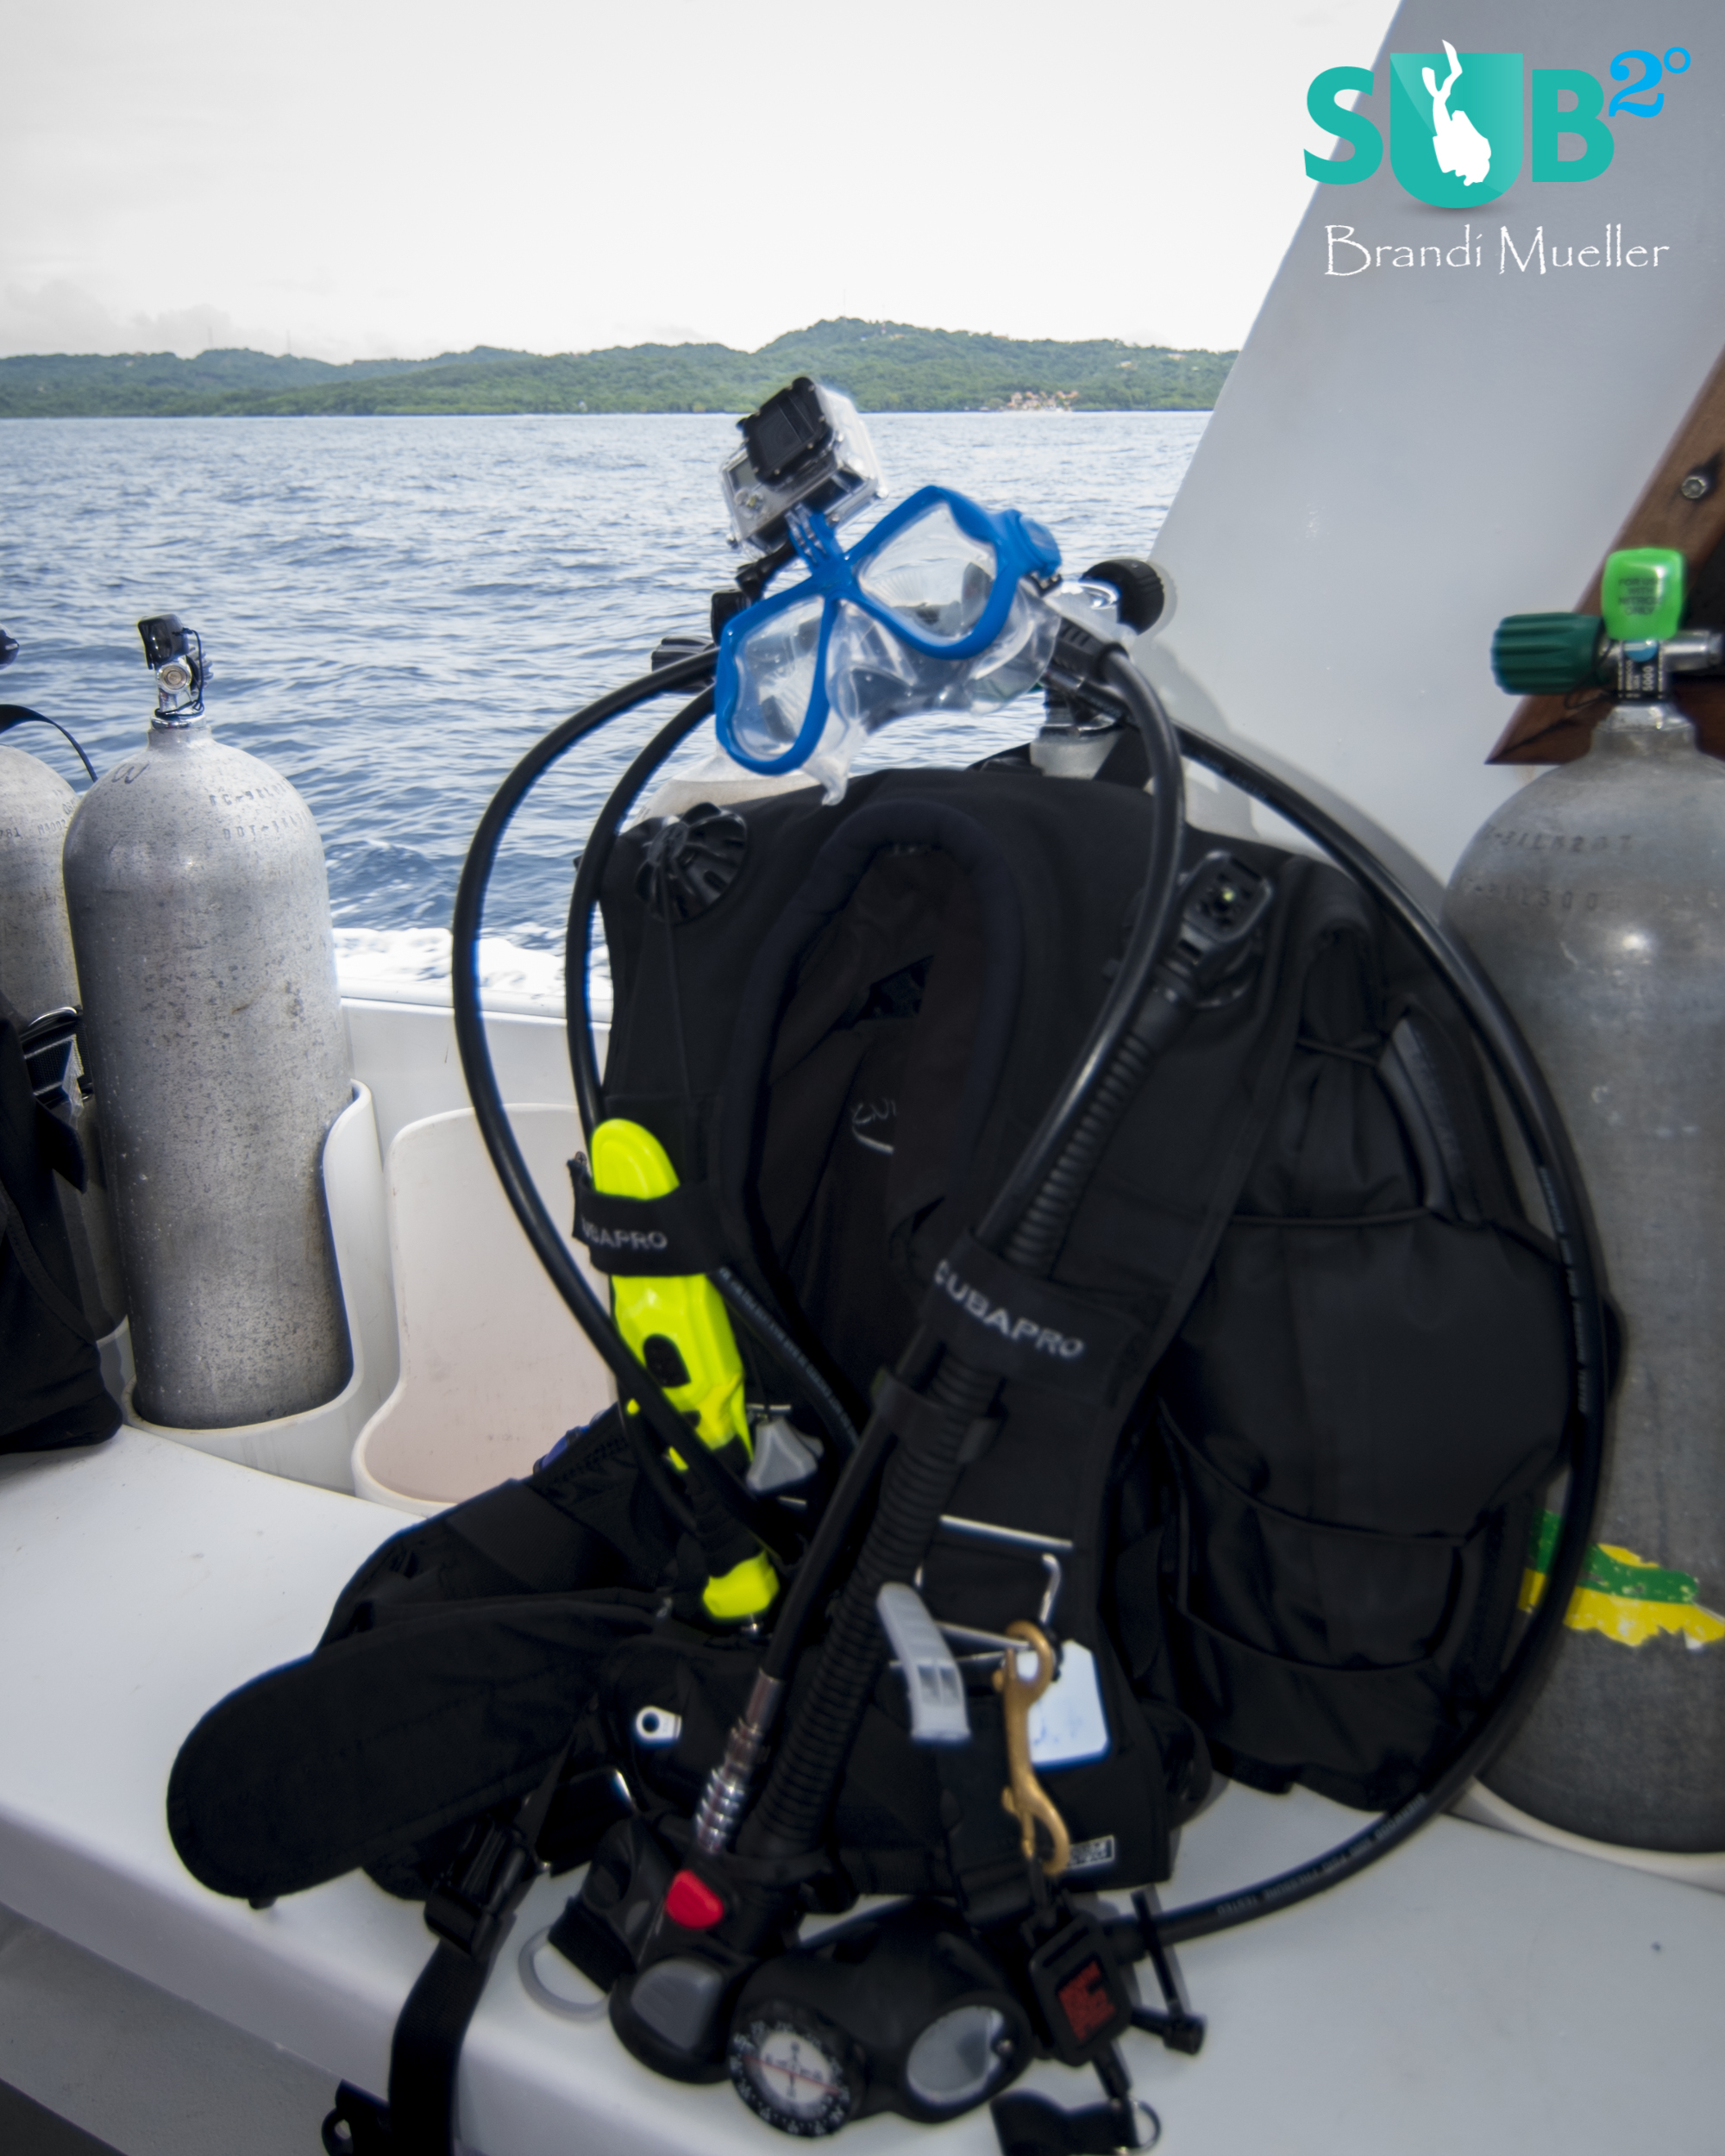 The perfect compliment to any scuba diver's gear kit: Sandmarc's Aqua Mask built to mount a GoPro.